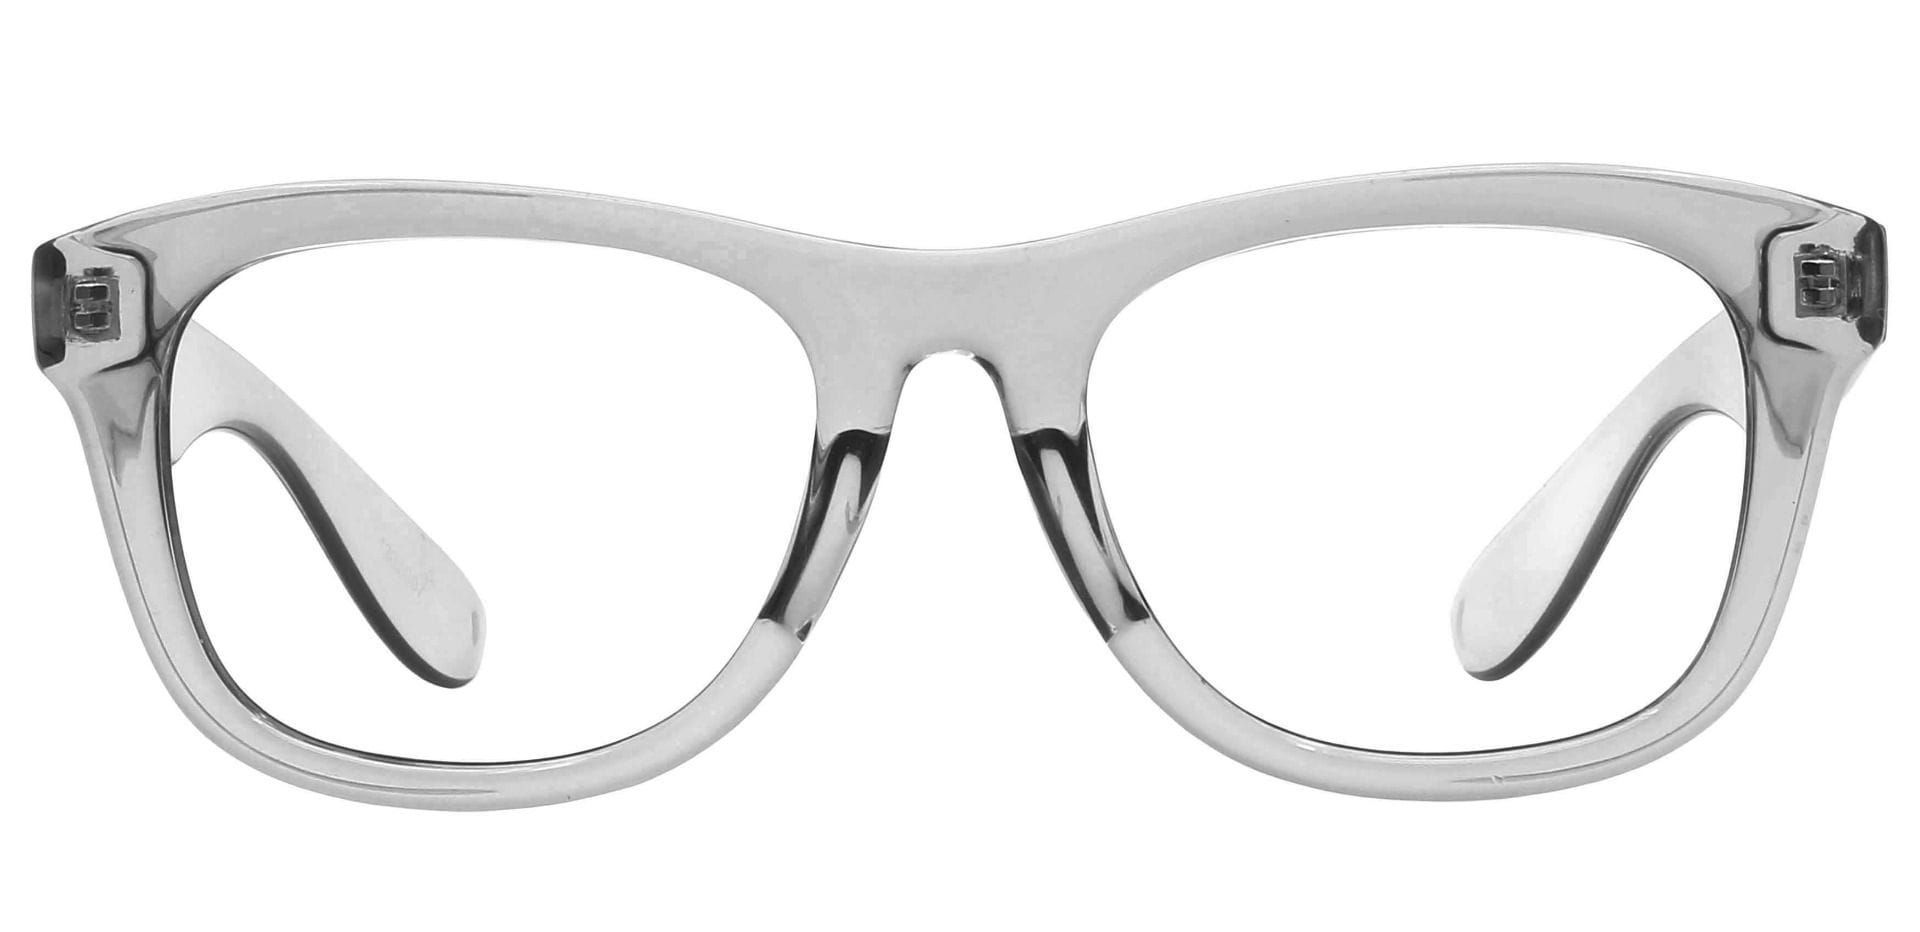 Callie Square Progressive Glasses - Gray